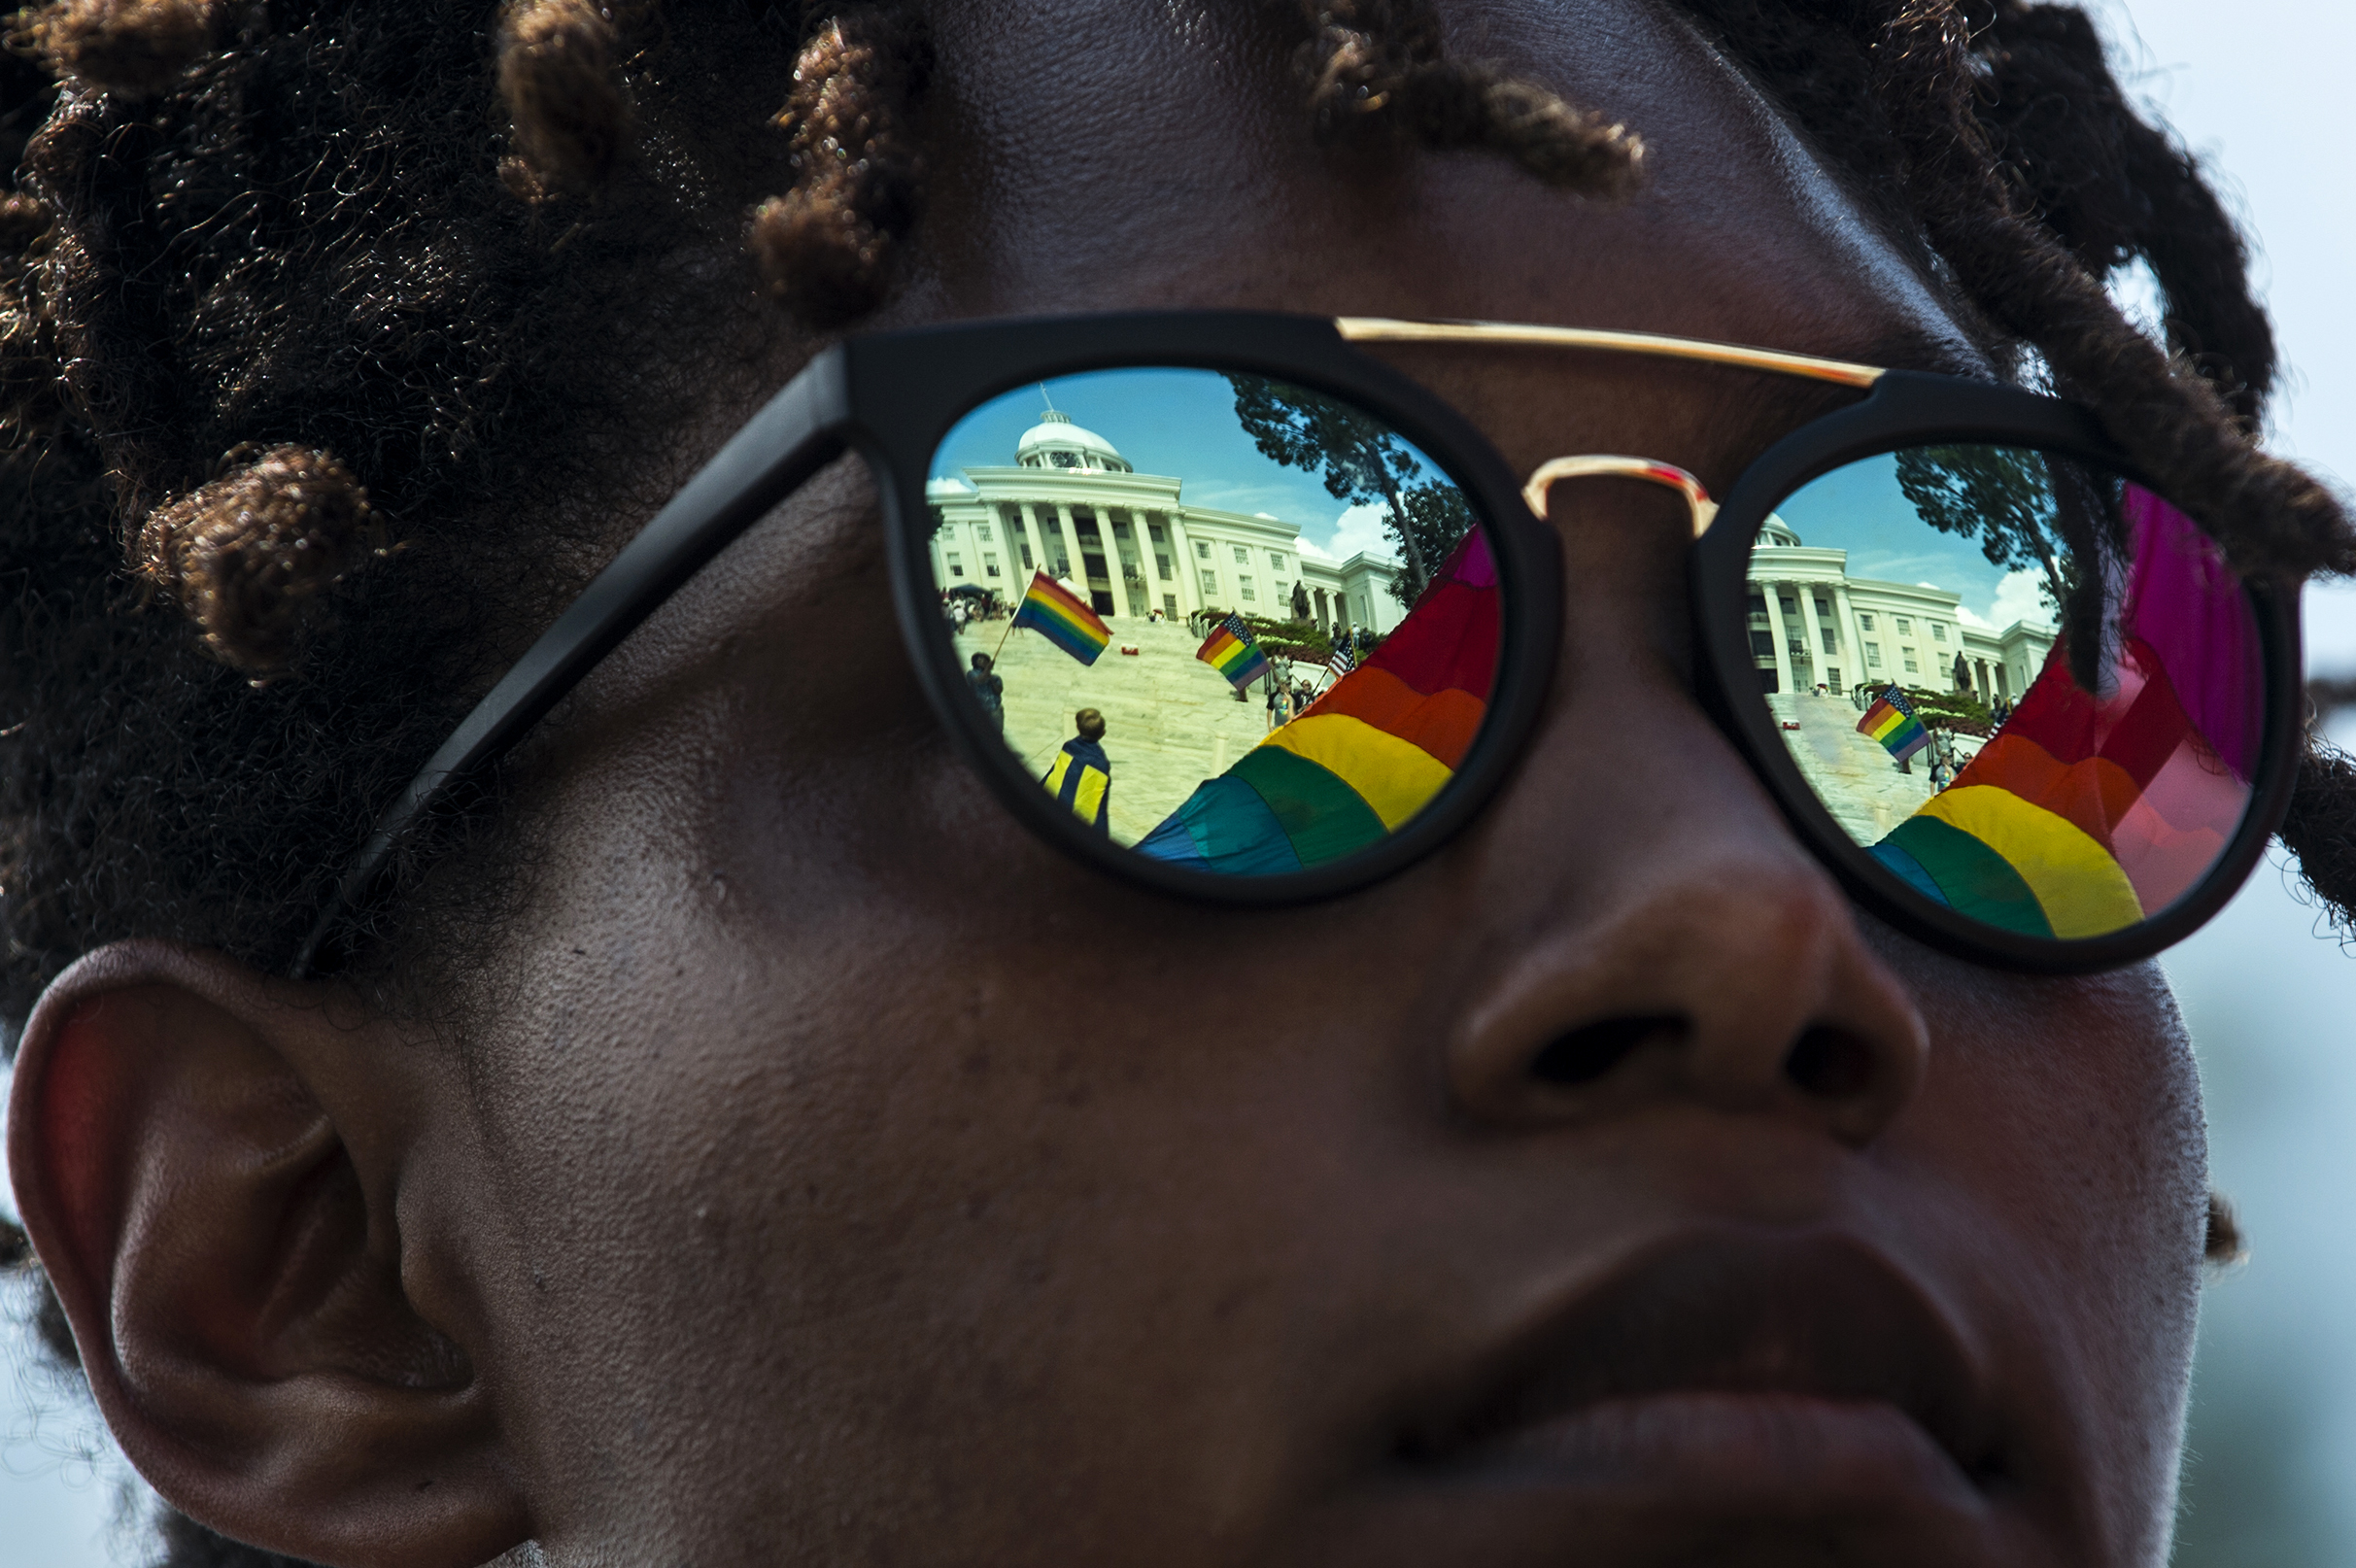 The Capitol building is reflected in Nikol Felder's glasses during the Montgomery Pride march on Sunday, Jun. 26, 2016 in Montgomery, Ala.